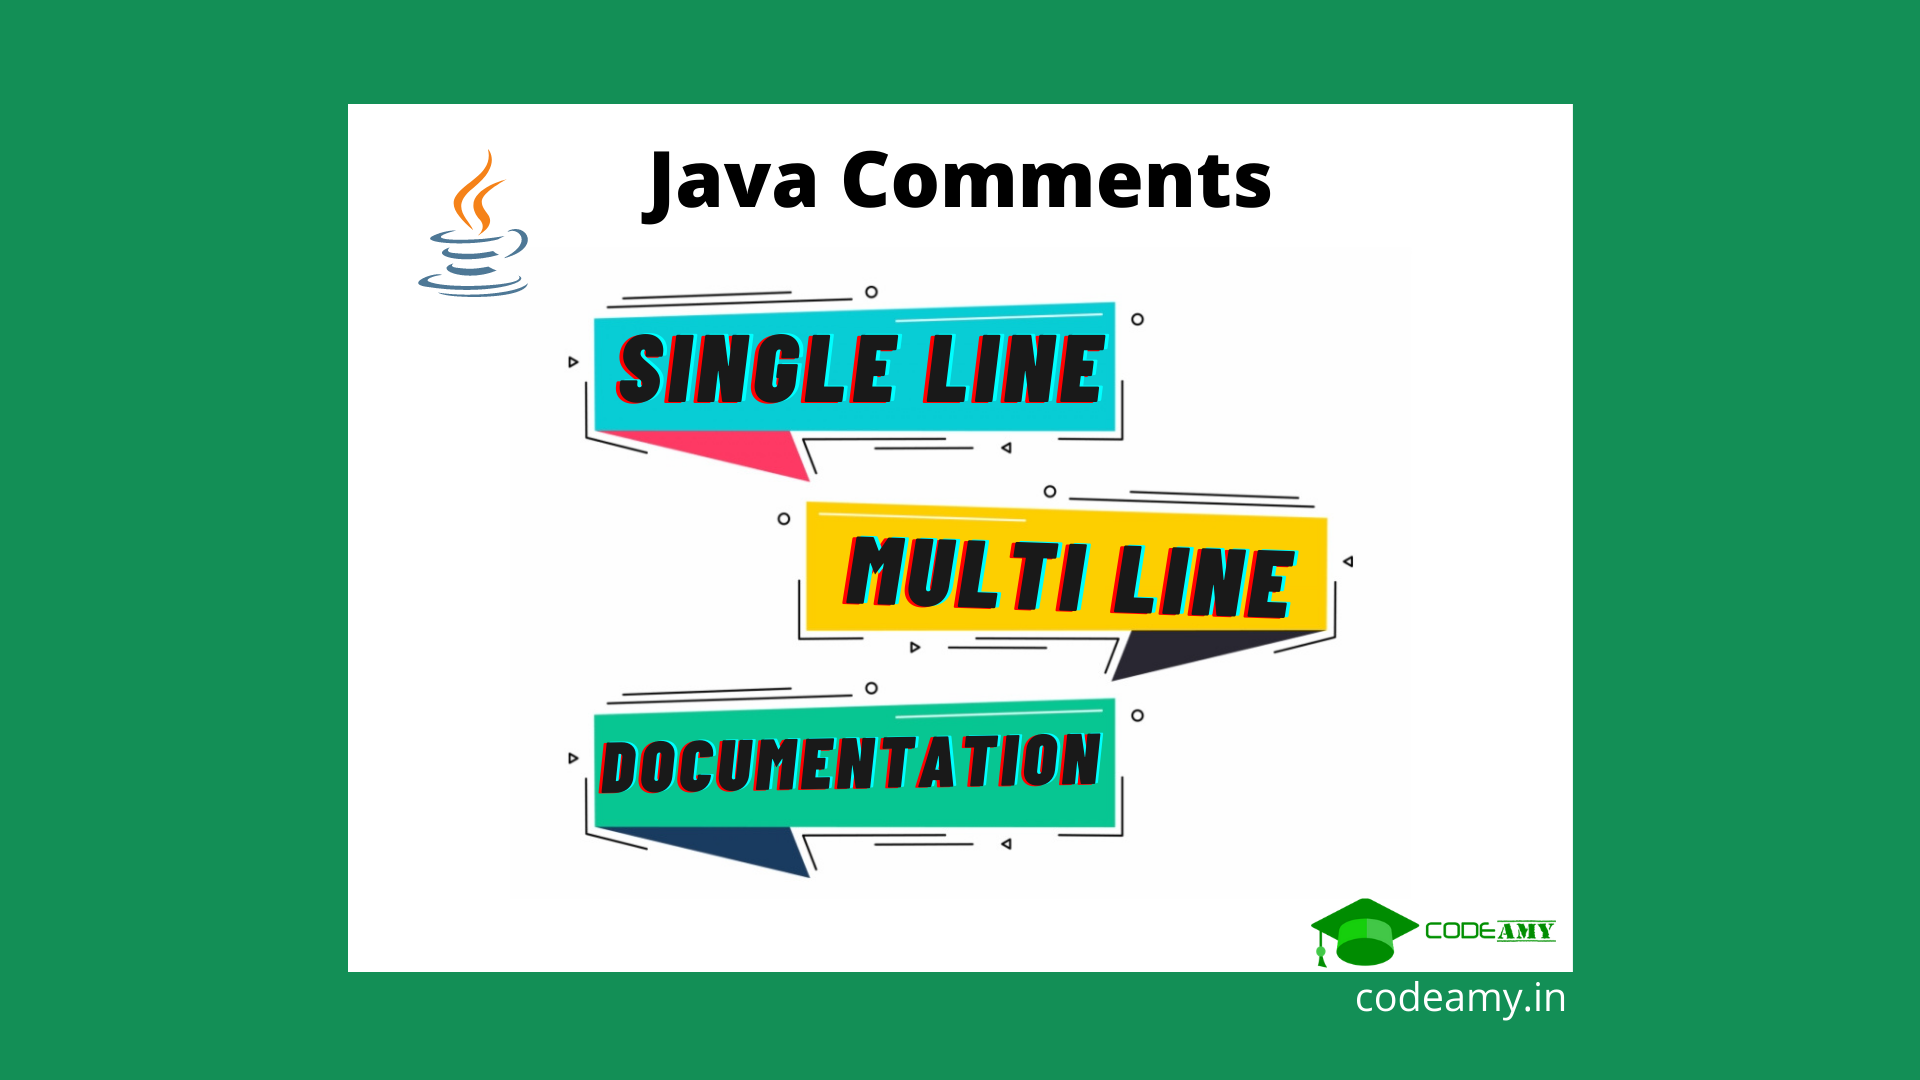 Java Comments and 3 types of Java Comments